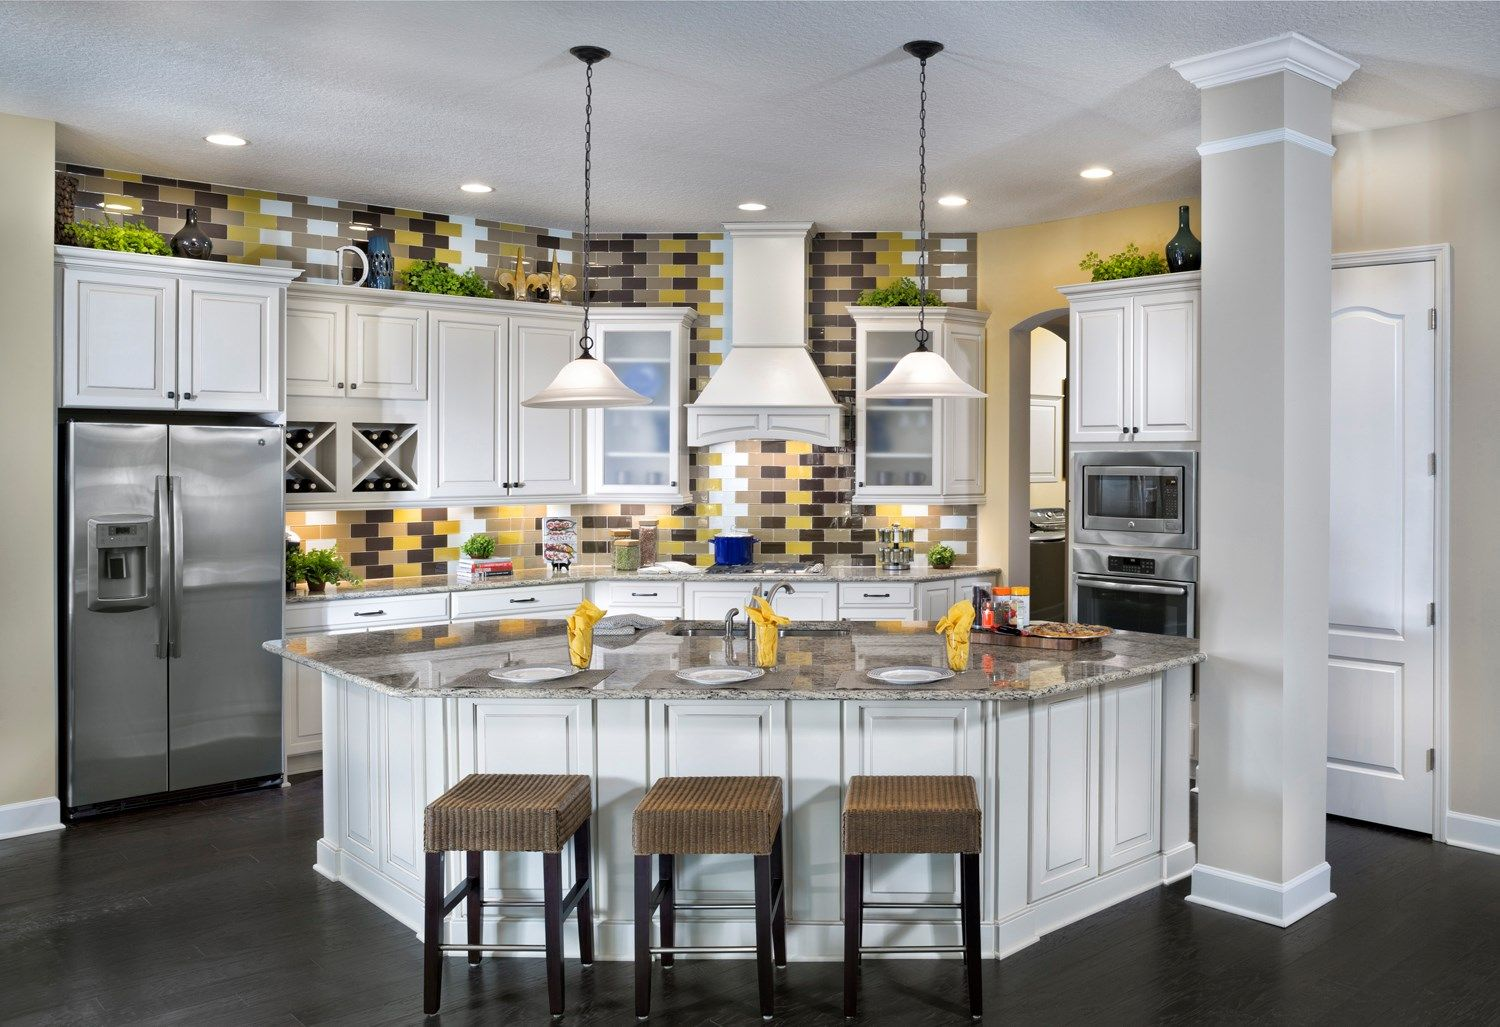 The southfield kitchen home kitchens home beautiful